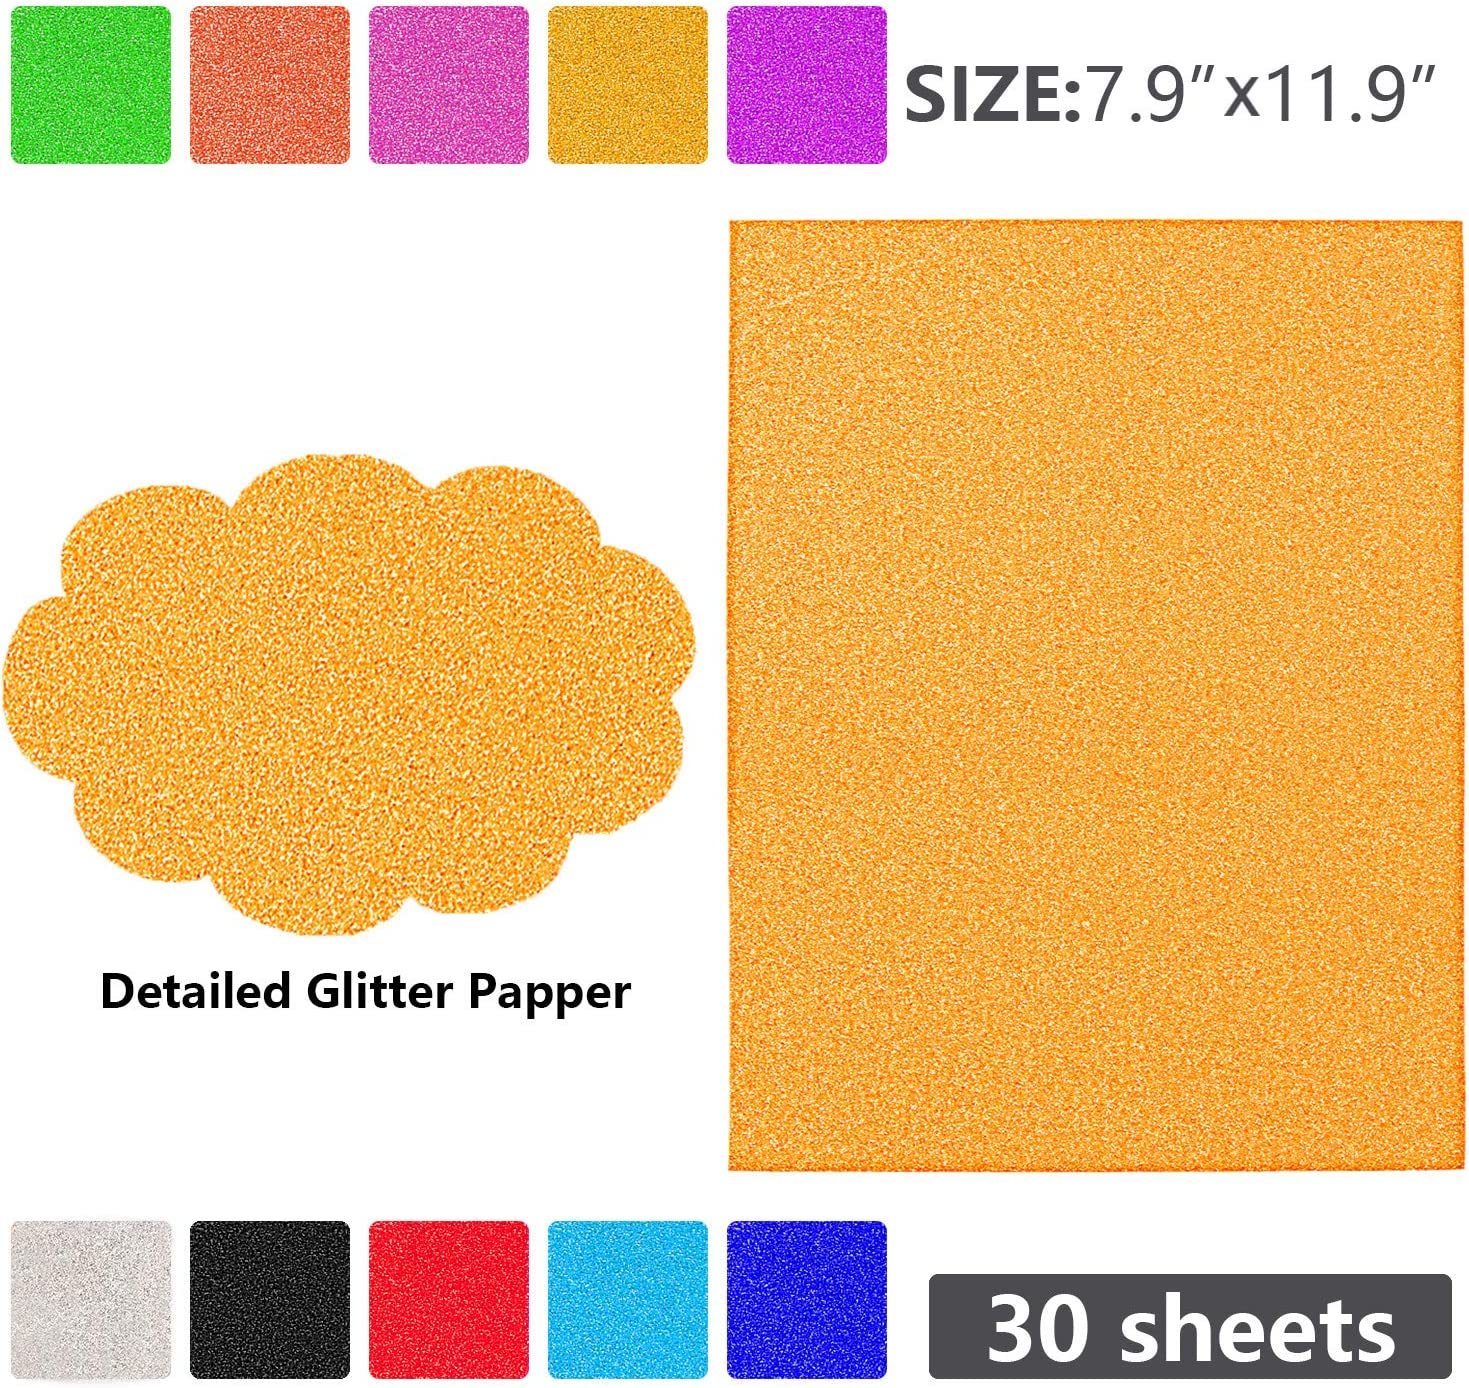 WOLLGORD Glitter Cardstock Paper 30 Sheets Sparkly Paper Premium Craft Cardstock for DIY Gift Box Wrapping Birthday Party Decor Scrapbook 10 Colors 250gms